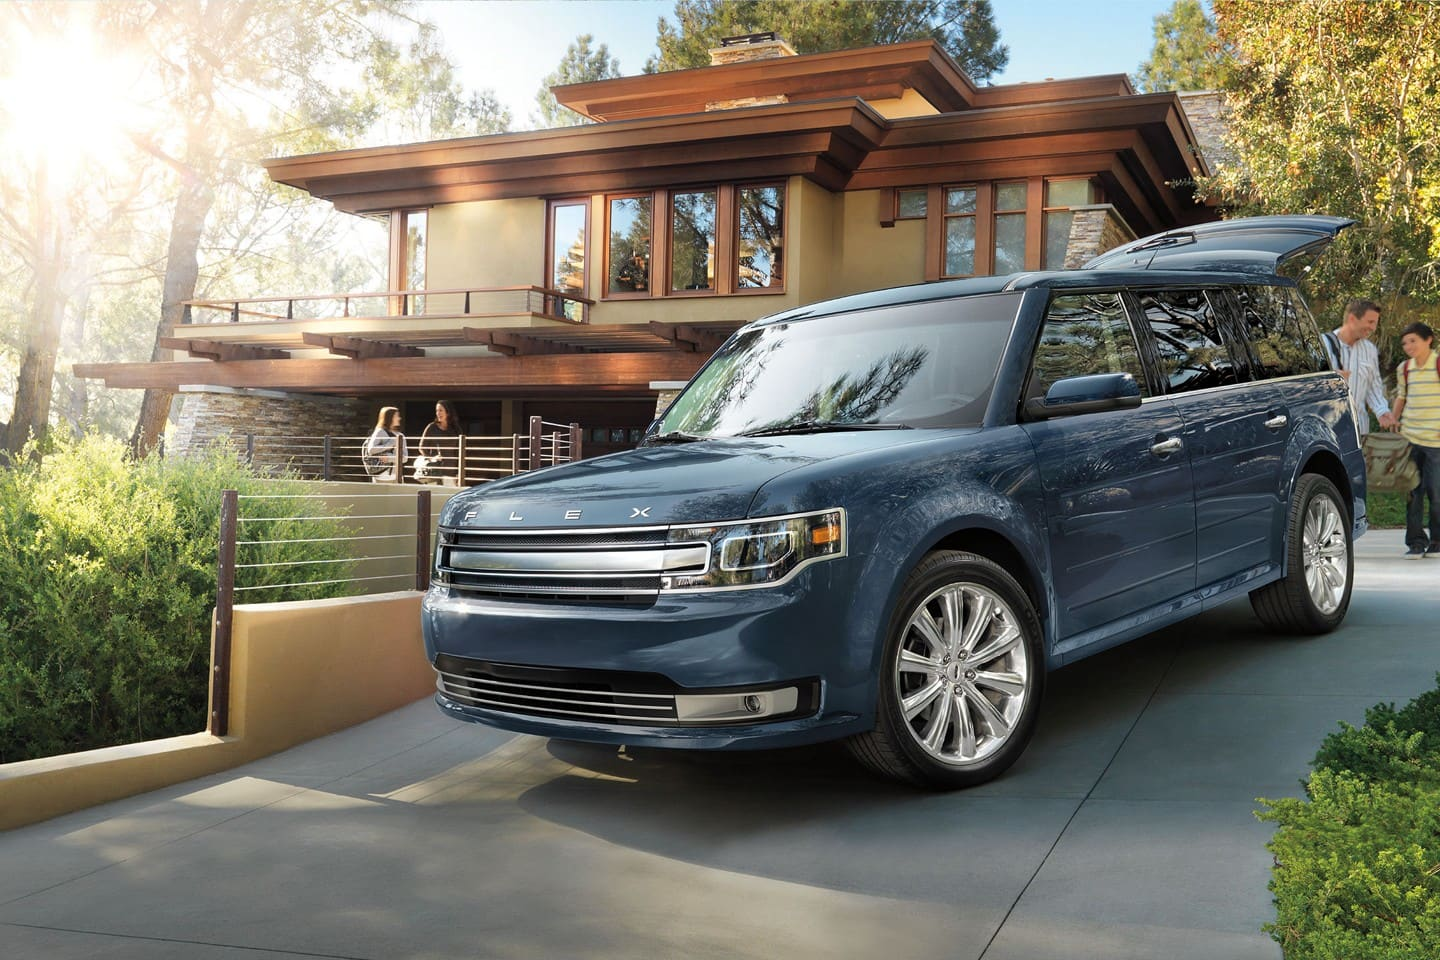 2019 Ford Flex Leasing near Mesquite, TX